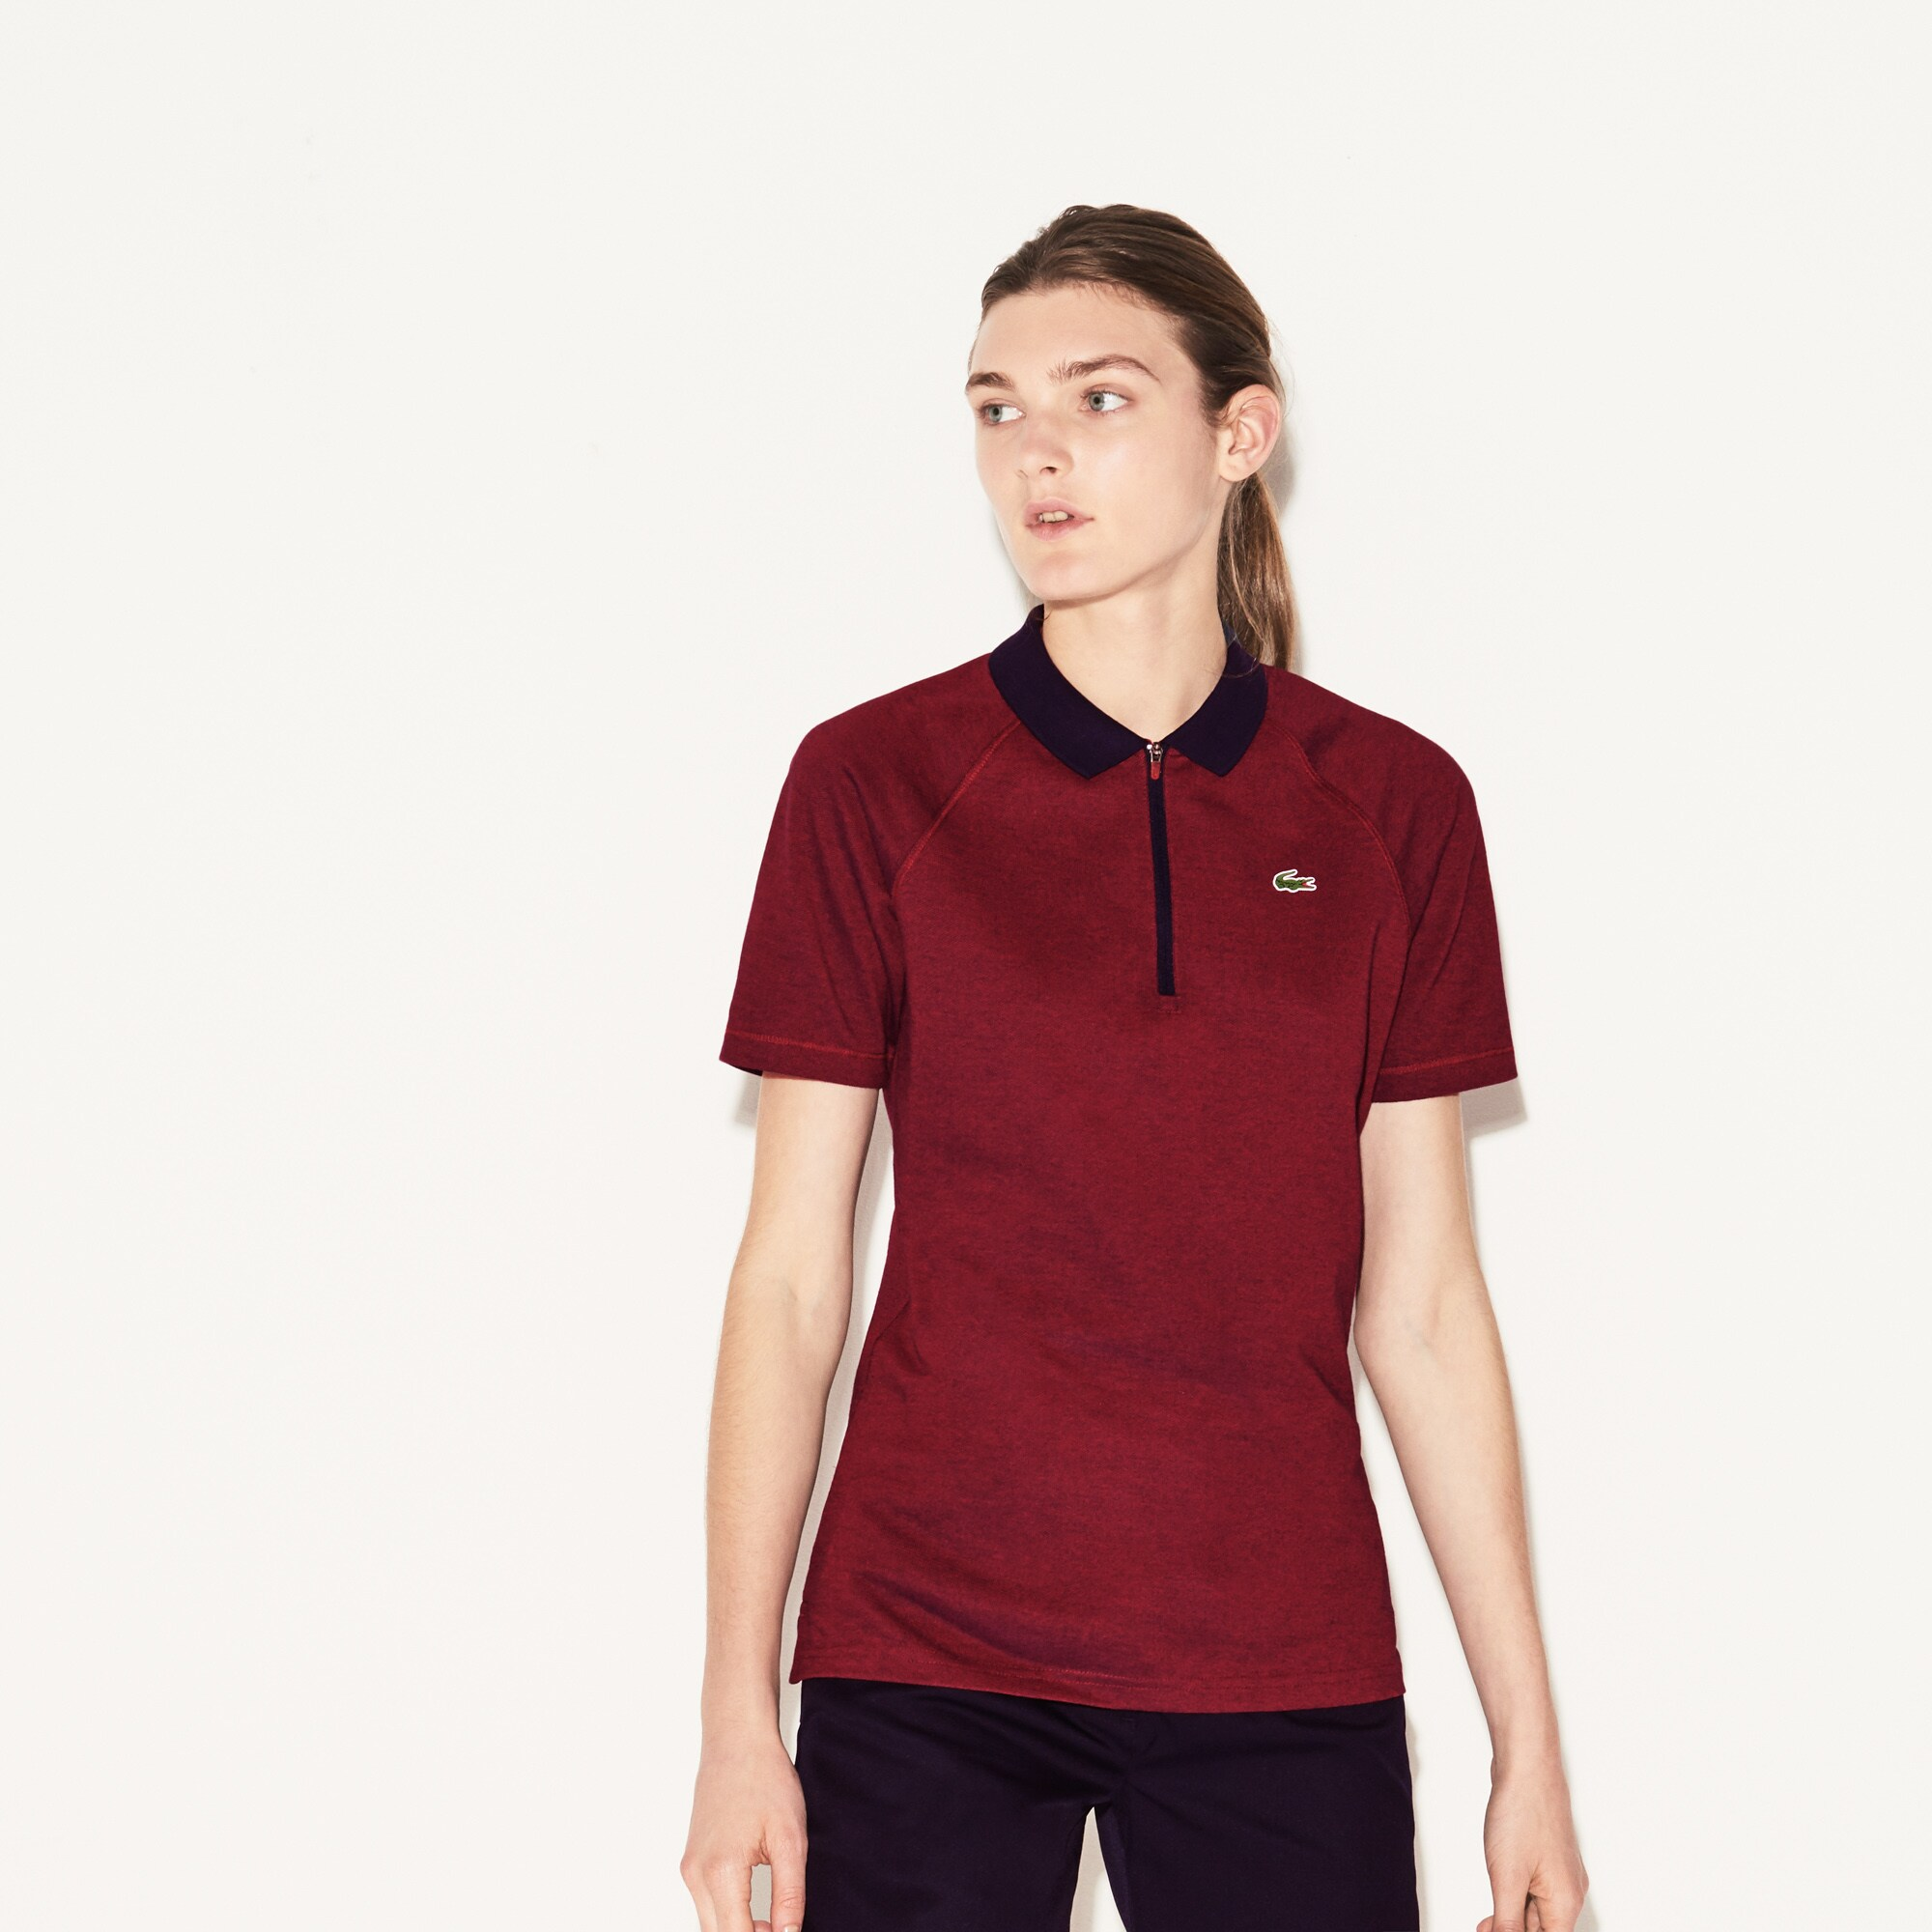 Women's Lacoste SPORT Zip Neck Technical Jersey Golf Polo Shirt